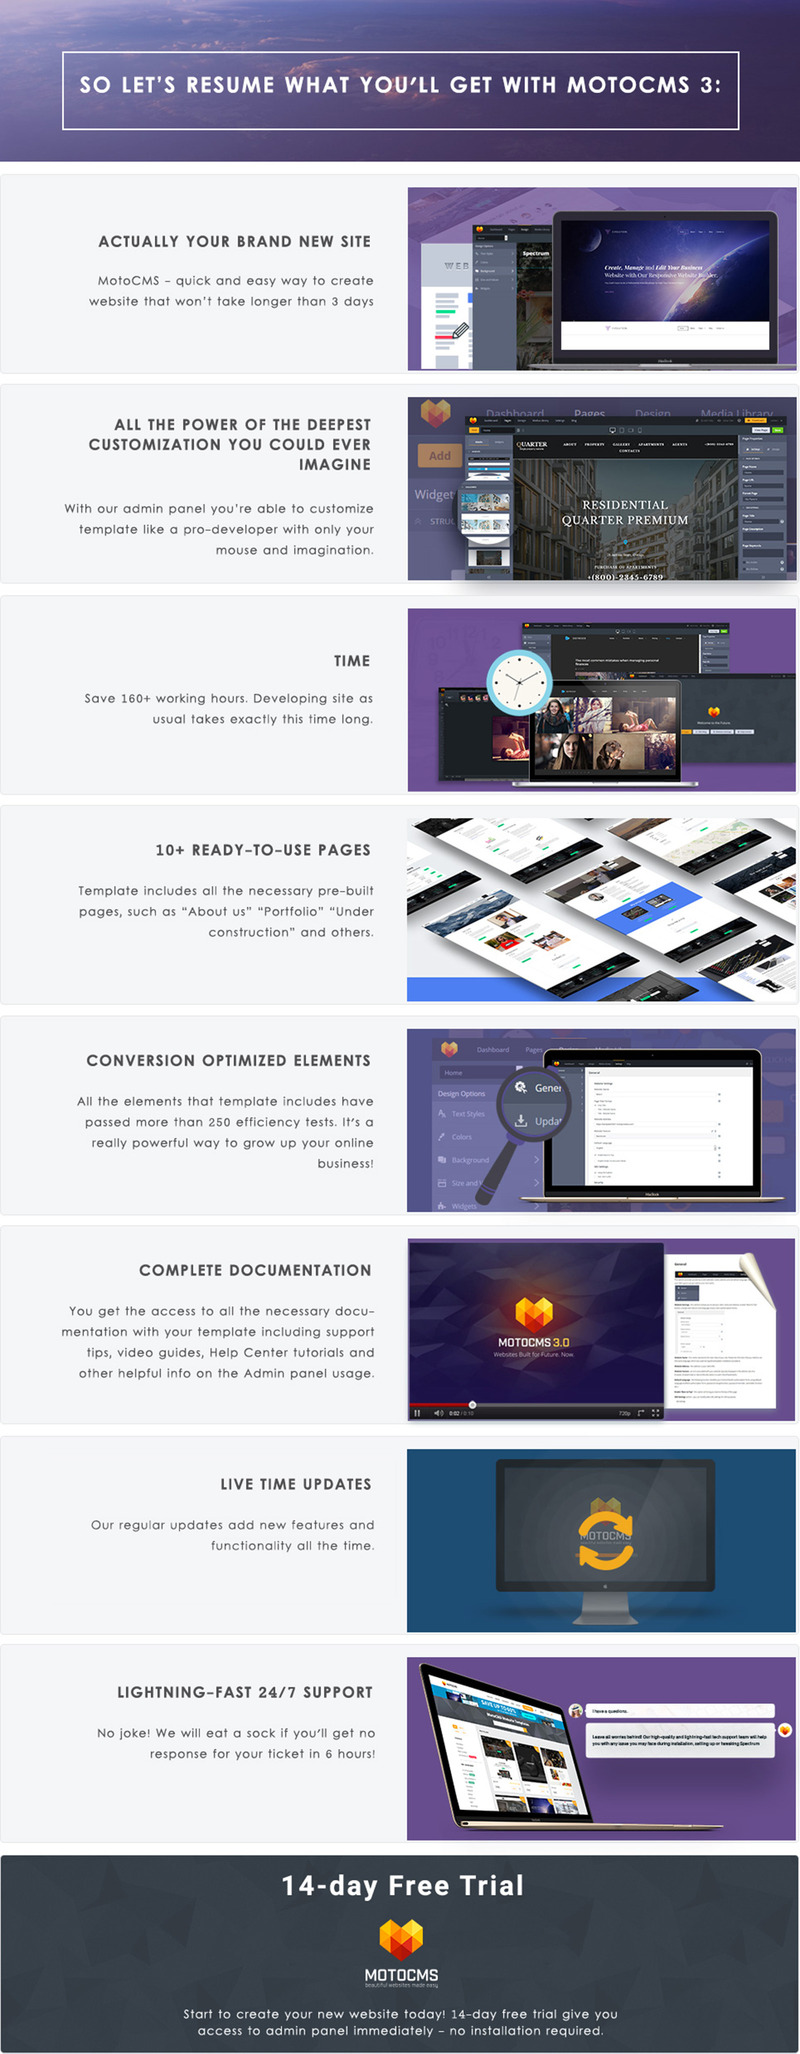 Photography Studio Photo Gallery Template - Features Image 6